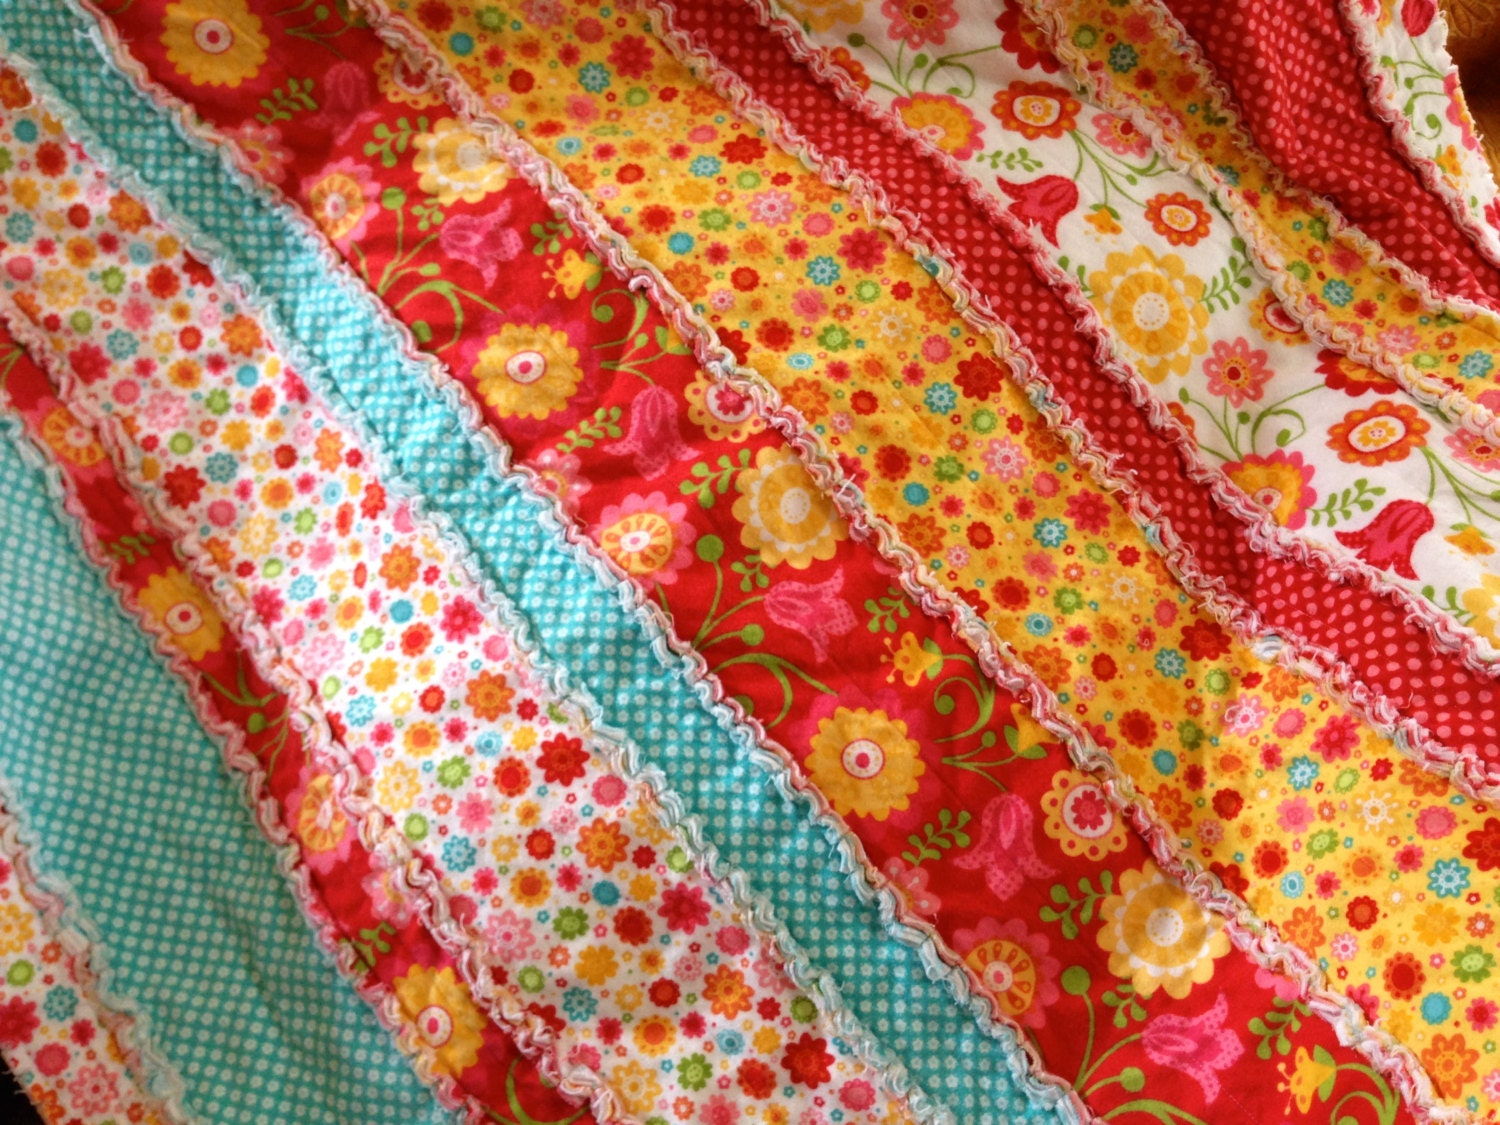 Flannel Rag Quilt Big Bright Colorful Floral Pattern For Any